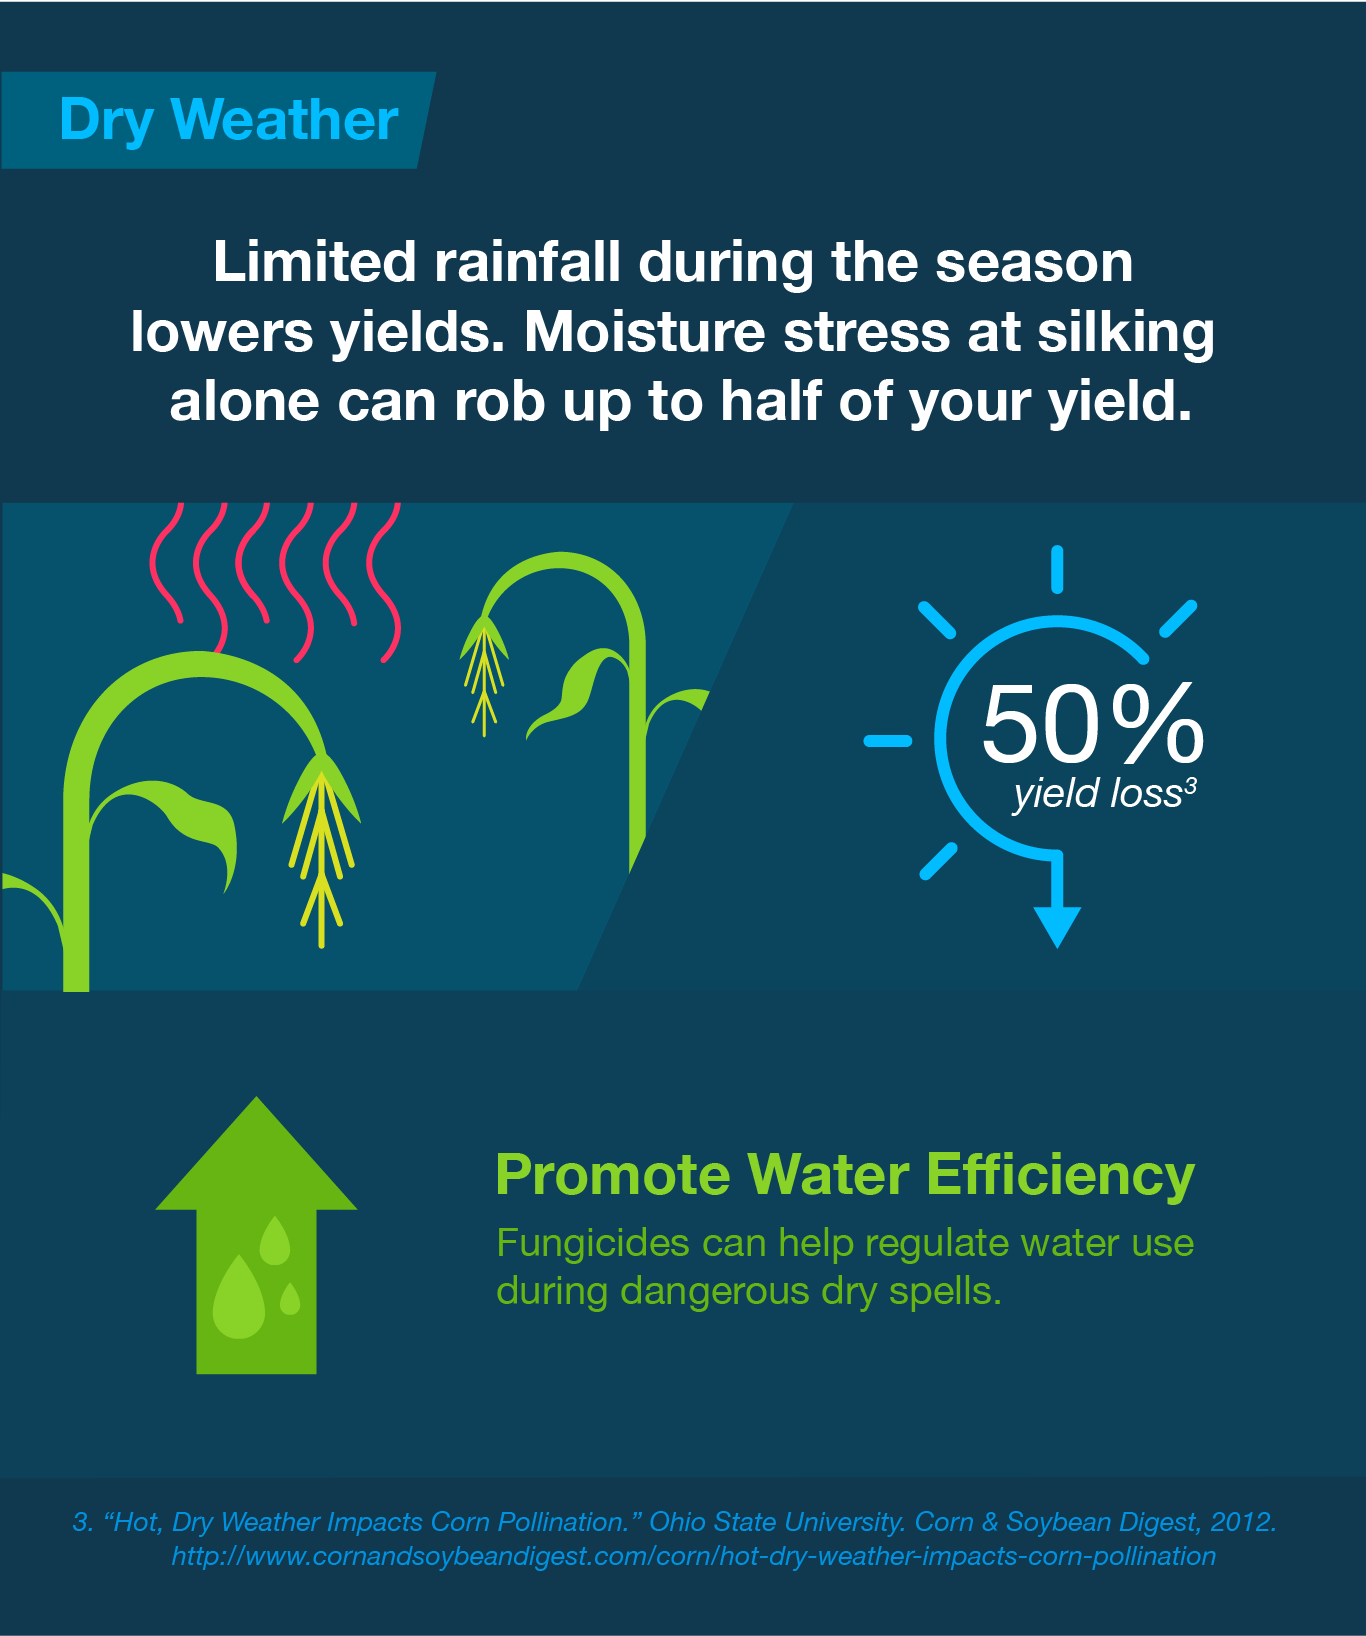 limited-rainfall-during-the-season-lowers-yields-moisture-stress-at-silking-can-rob-up-to-half-your-yield